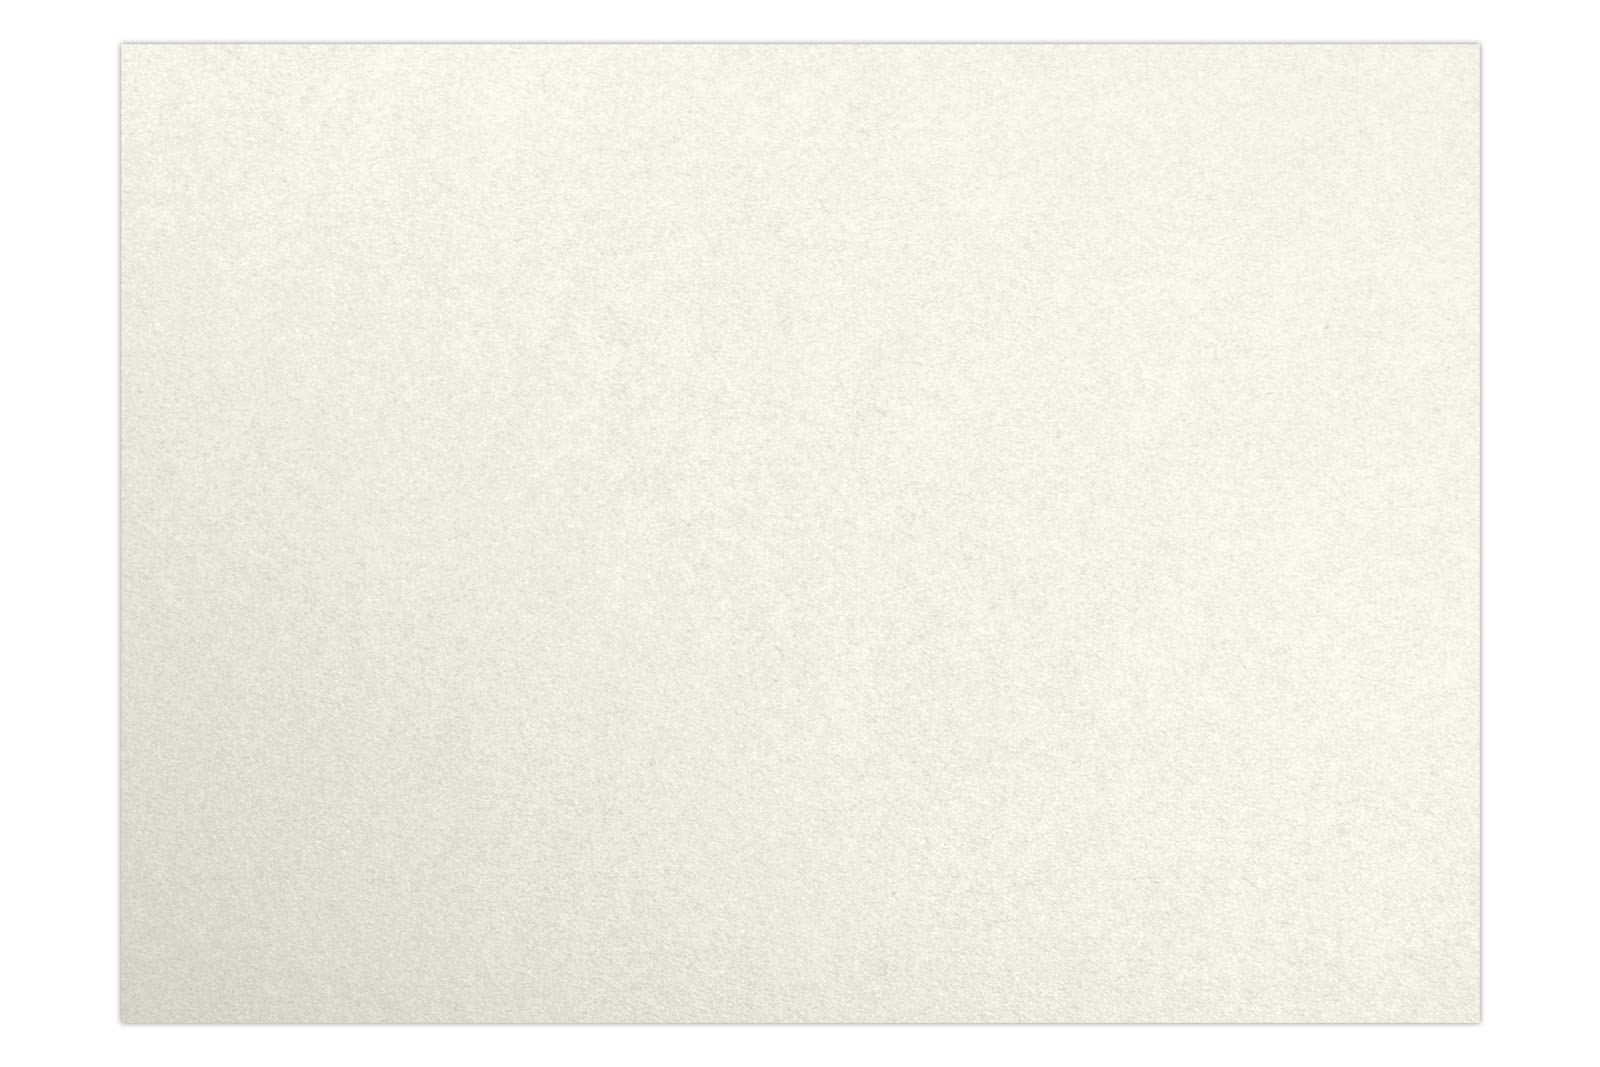 #17 Mini Flat Card (2 9/16 x 3 9/16) - Quartz Metallic (50 Qty.) | Perfect for Flower Cards, Place Cards, Notes, Invitation Inserts, Personal Stationery and More! | 4080-M08-50